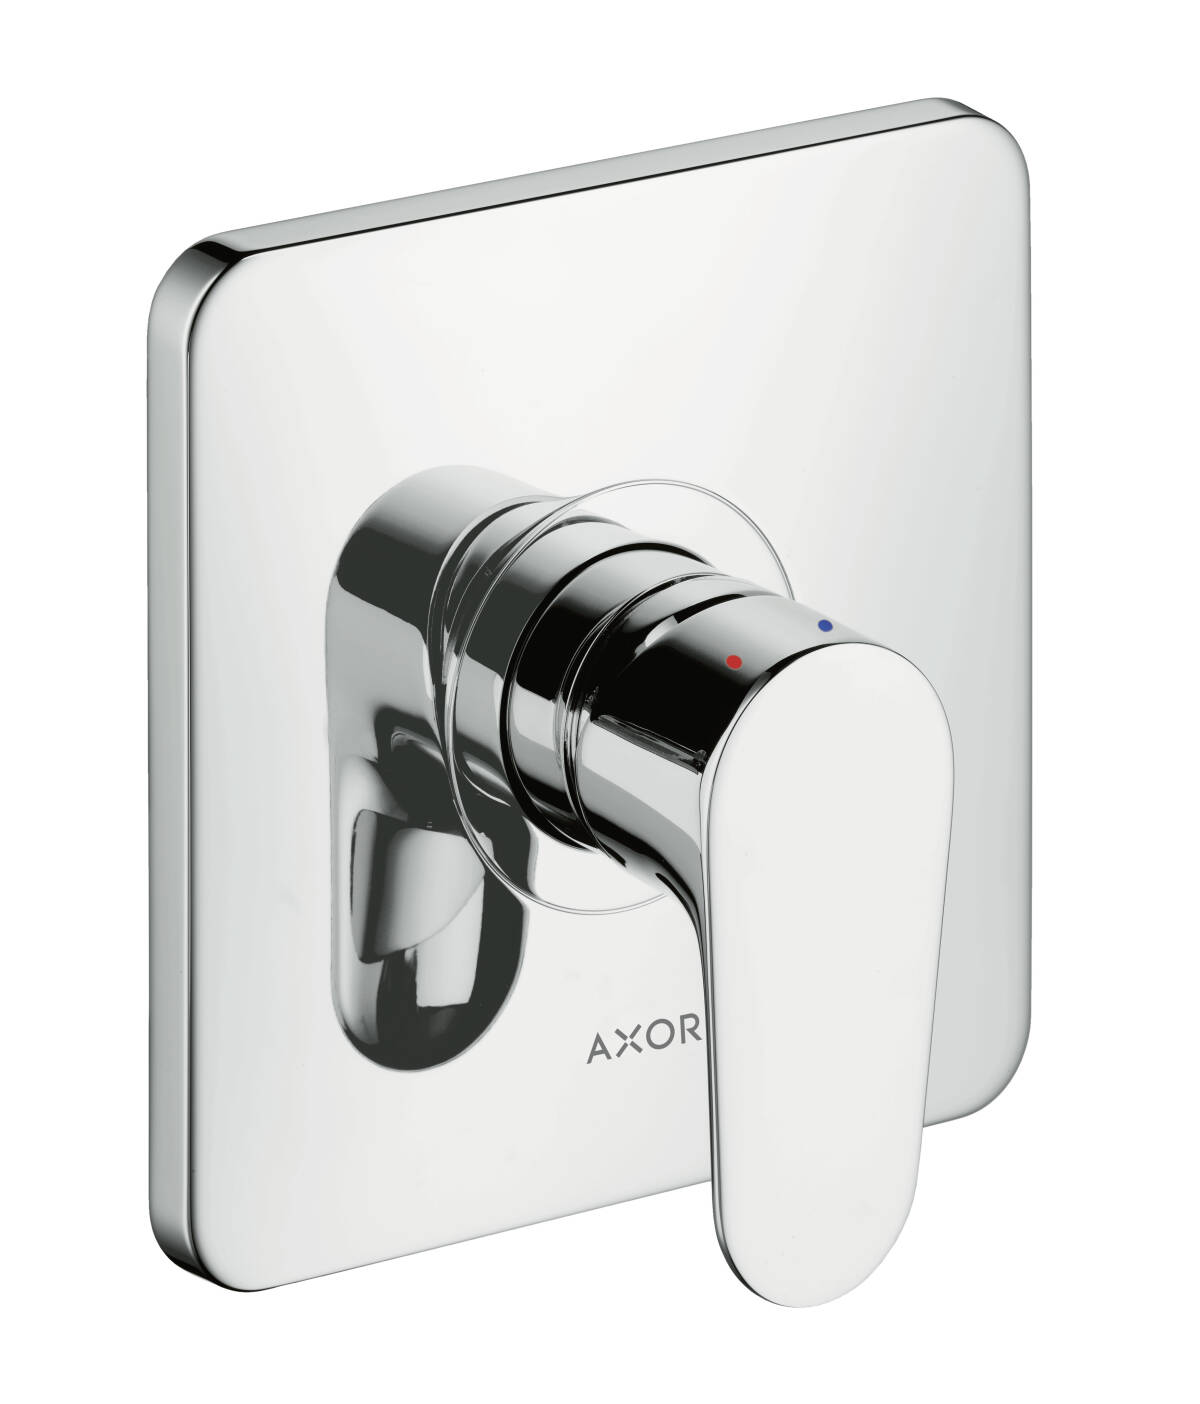 axor citterio m shower mixers 1 outlet stainless steel optic 34625800. Black Bedroom Furniture Sets. Home Design Ideas